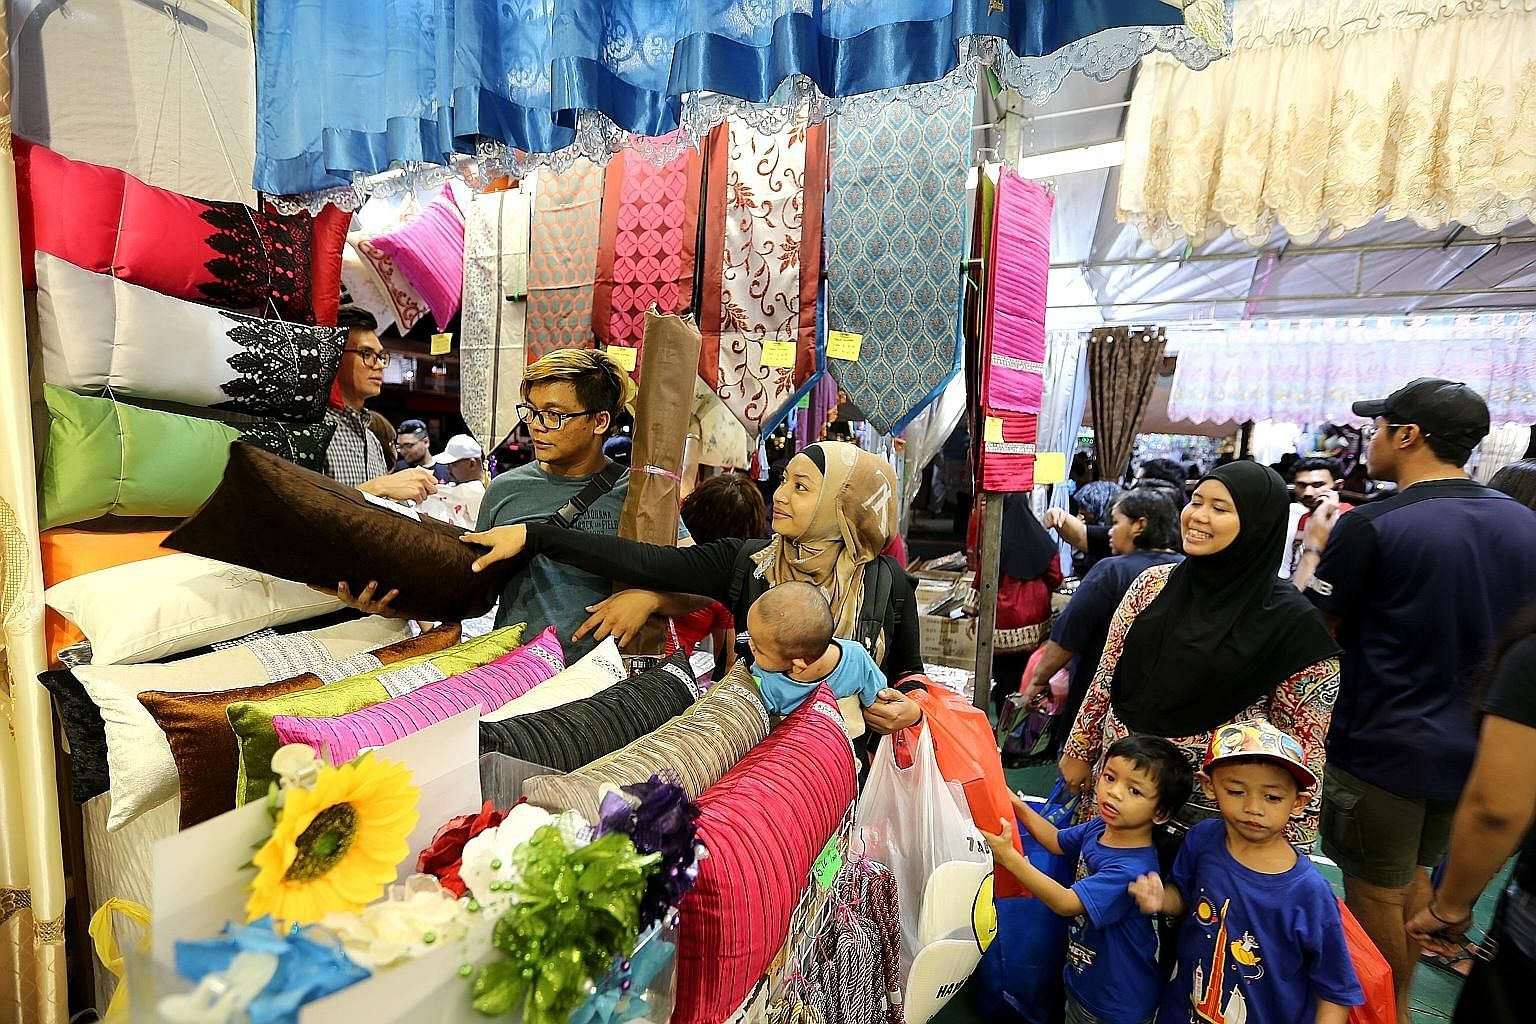 Madam Fatin Shazwani (centre) and her family getting some last-minute Hari Raya Aidilfitri shopping done at the Geylang Serai Bazaar last night. The month-long bazaar, which was into its final night, was jam-packed with people hoping to pick up barga